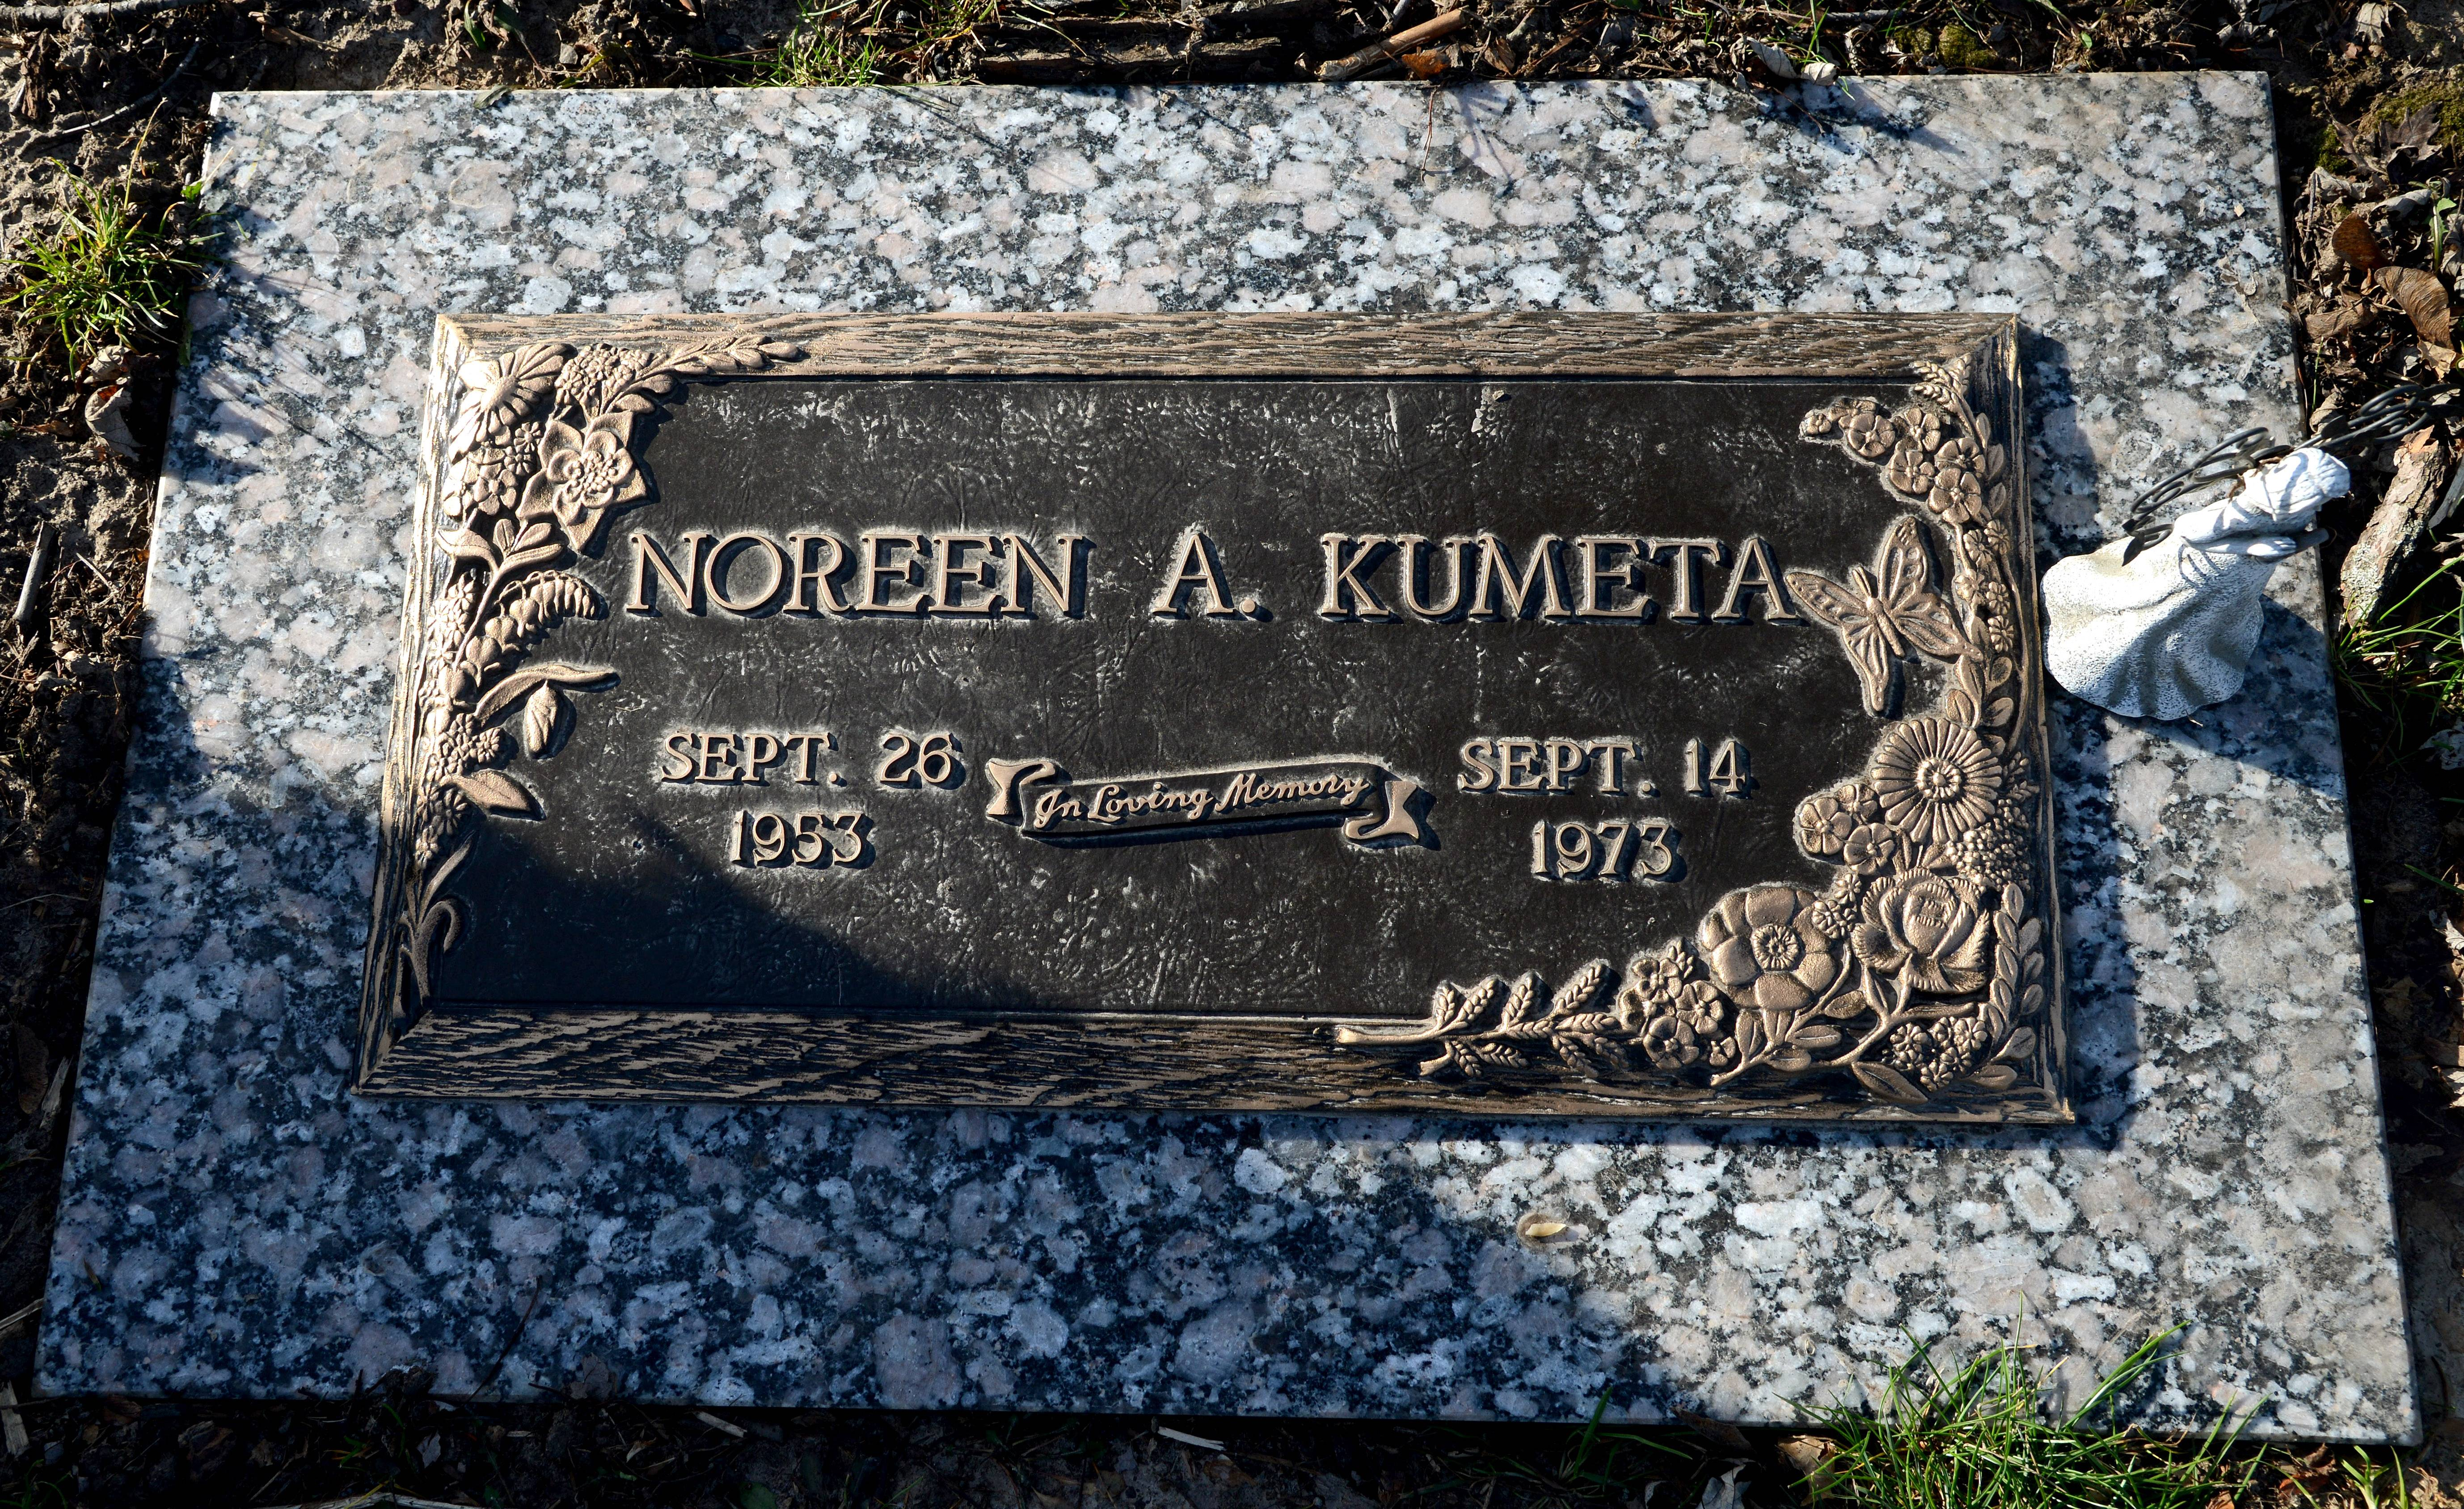 Noreen A. Kumeta Rudd was buried at the Dundee Township Cemetery East after her 1973 death.